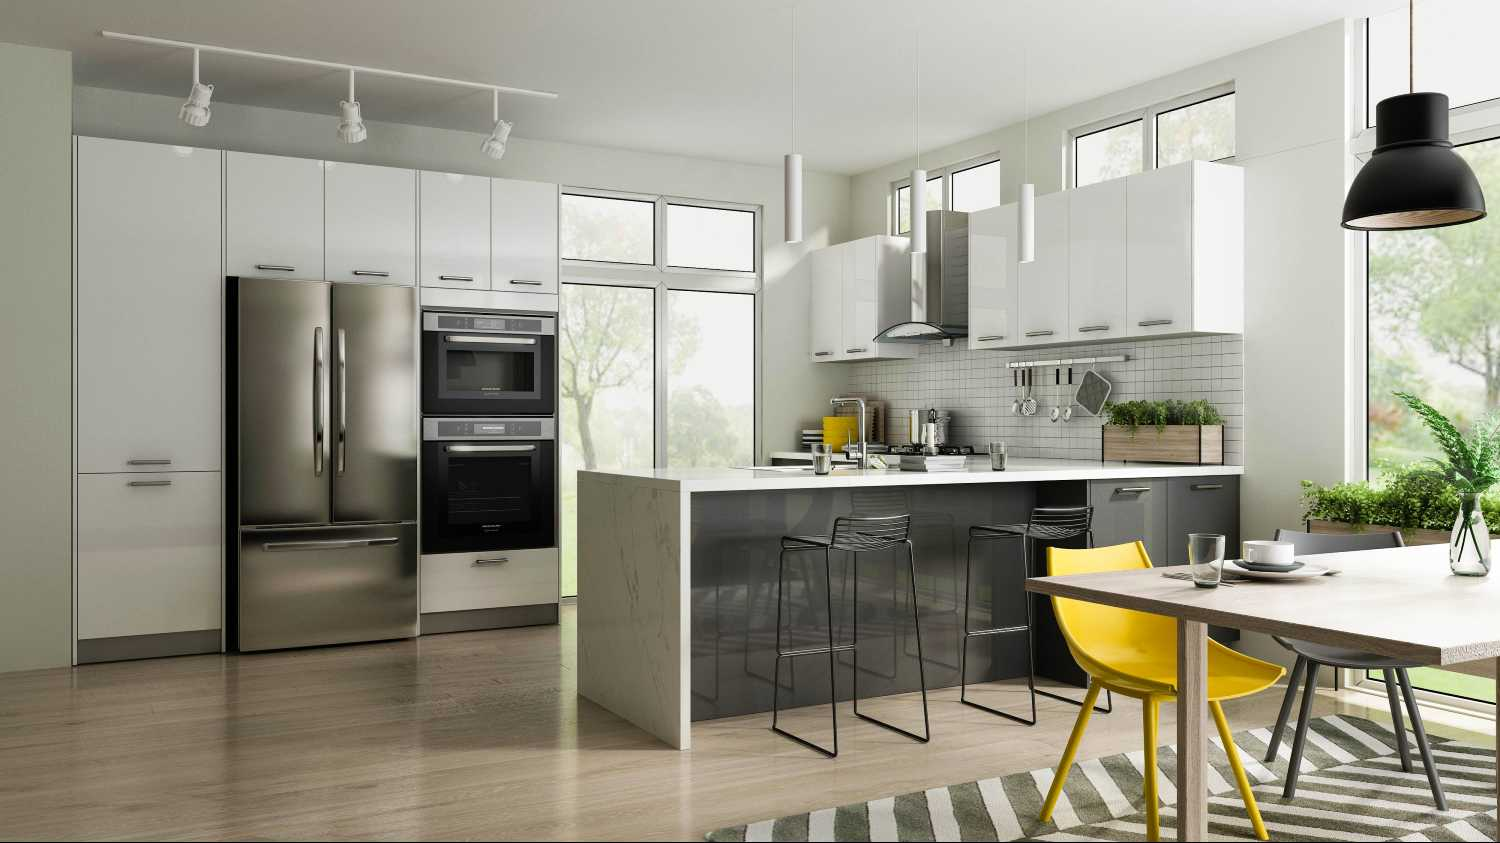 Modern Staged Kitchen with Sleek european style cabinets in white and grey